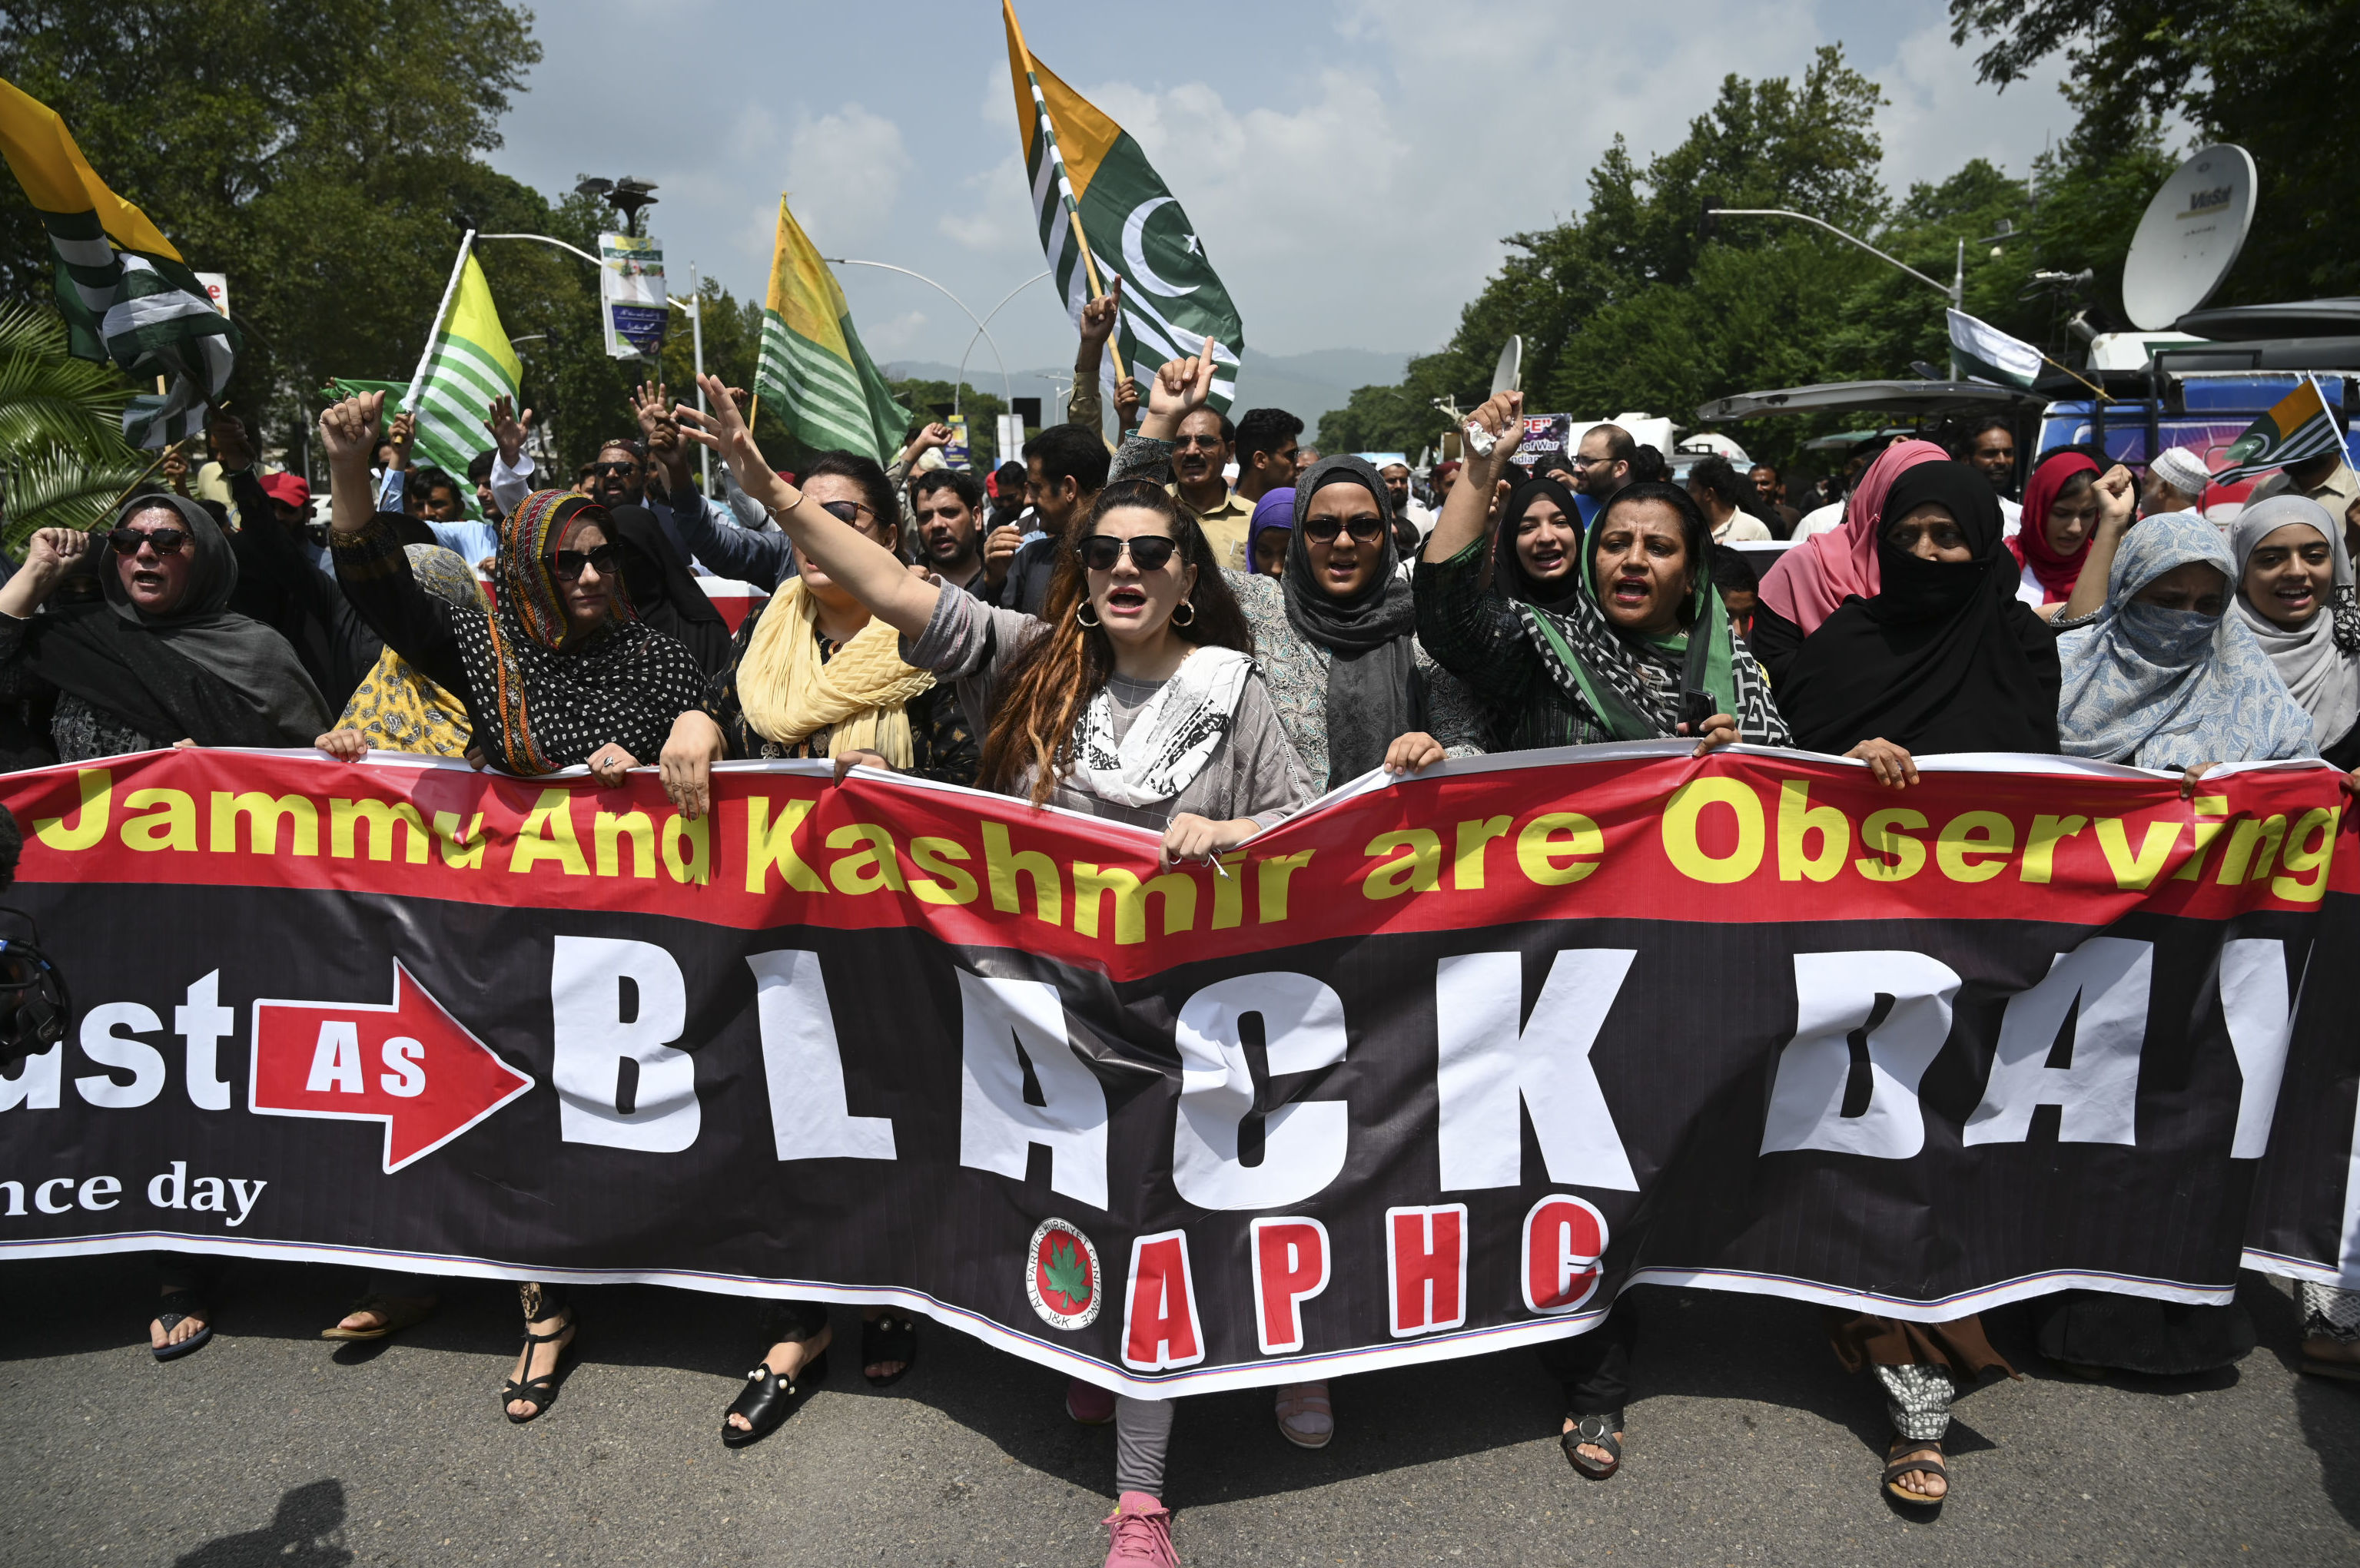 Protesters of the All Parties Hurriyat Conference (APHC) shout anti-Indian slogans near the Indian High Commission during a protest rally in Islamabad